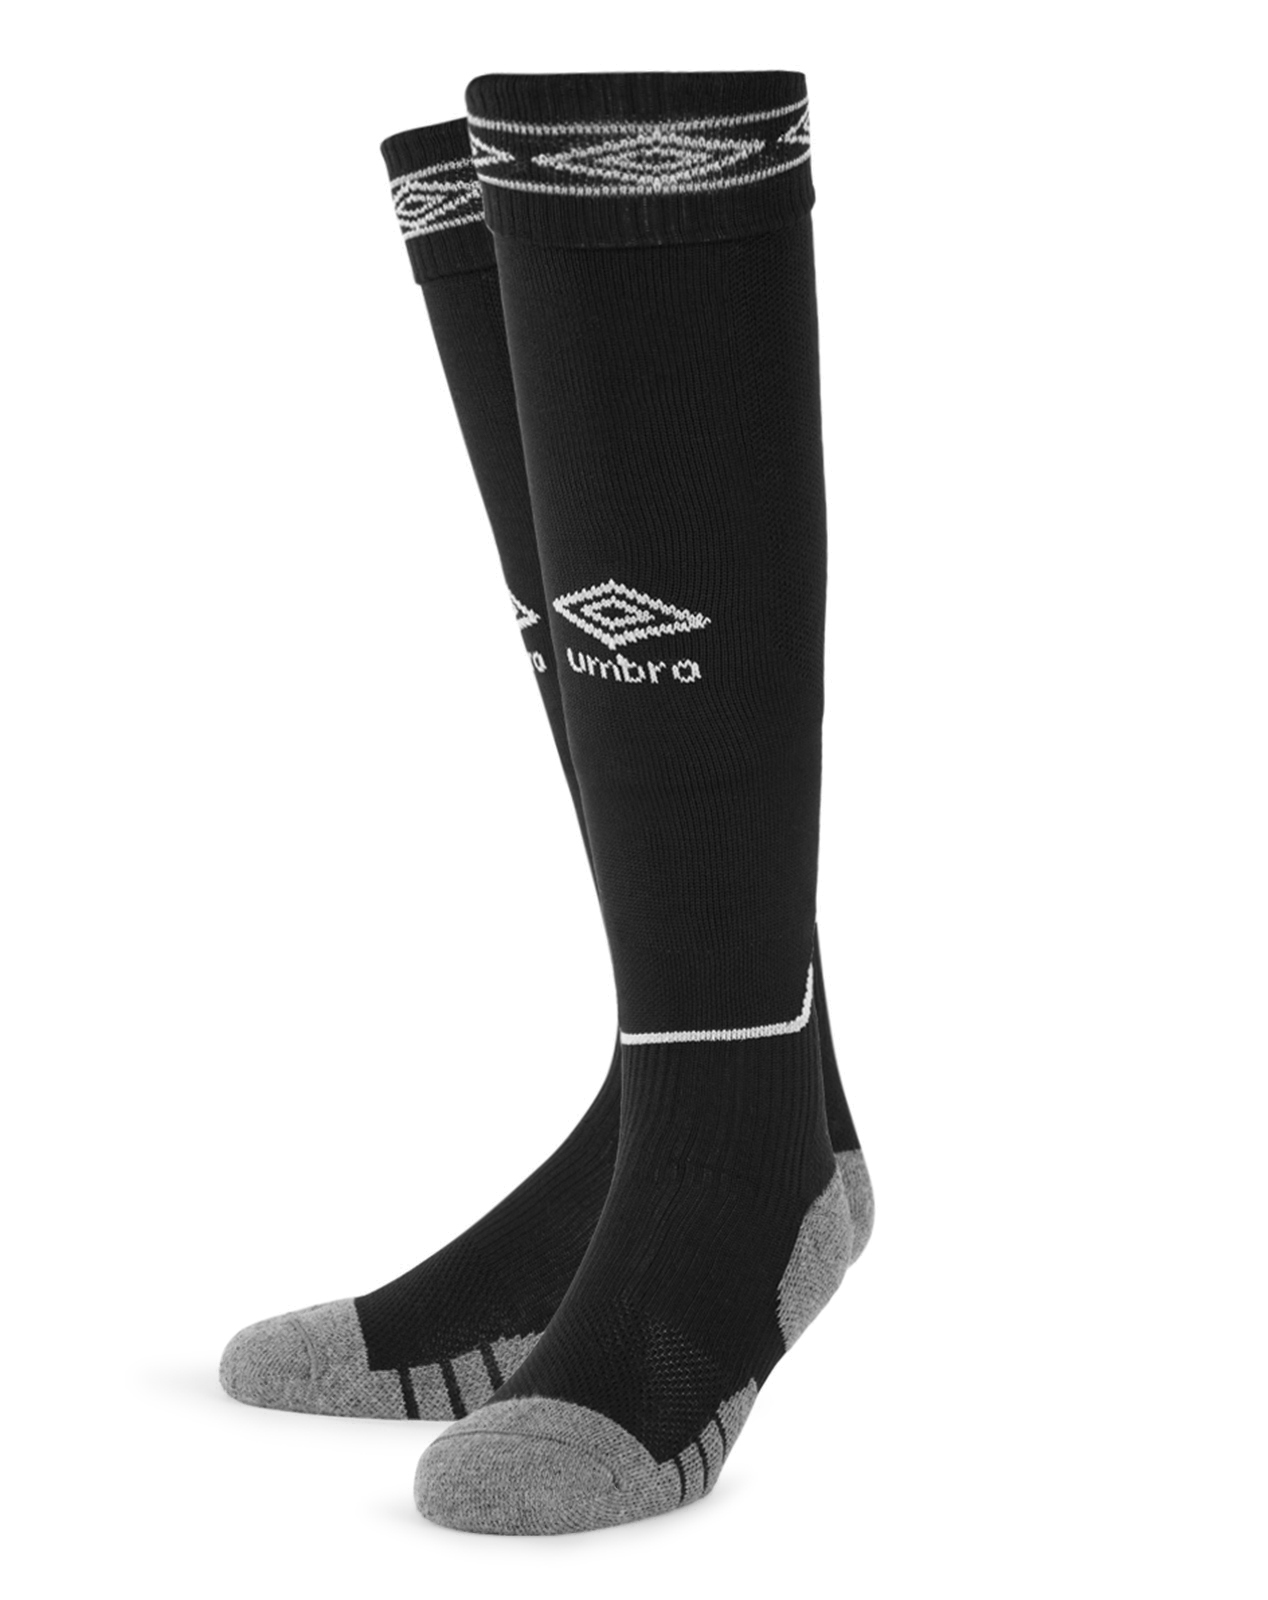 Umbro Diamond Top Socks - Black/White